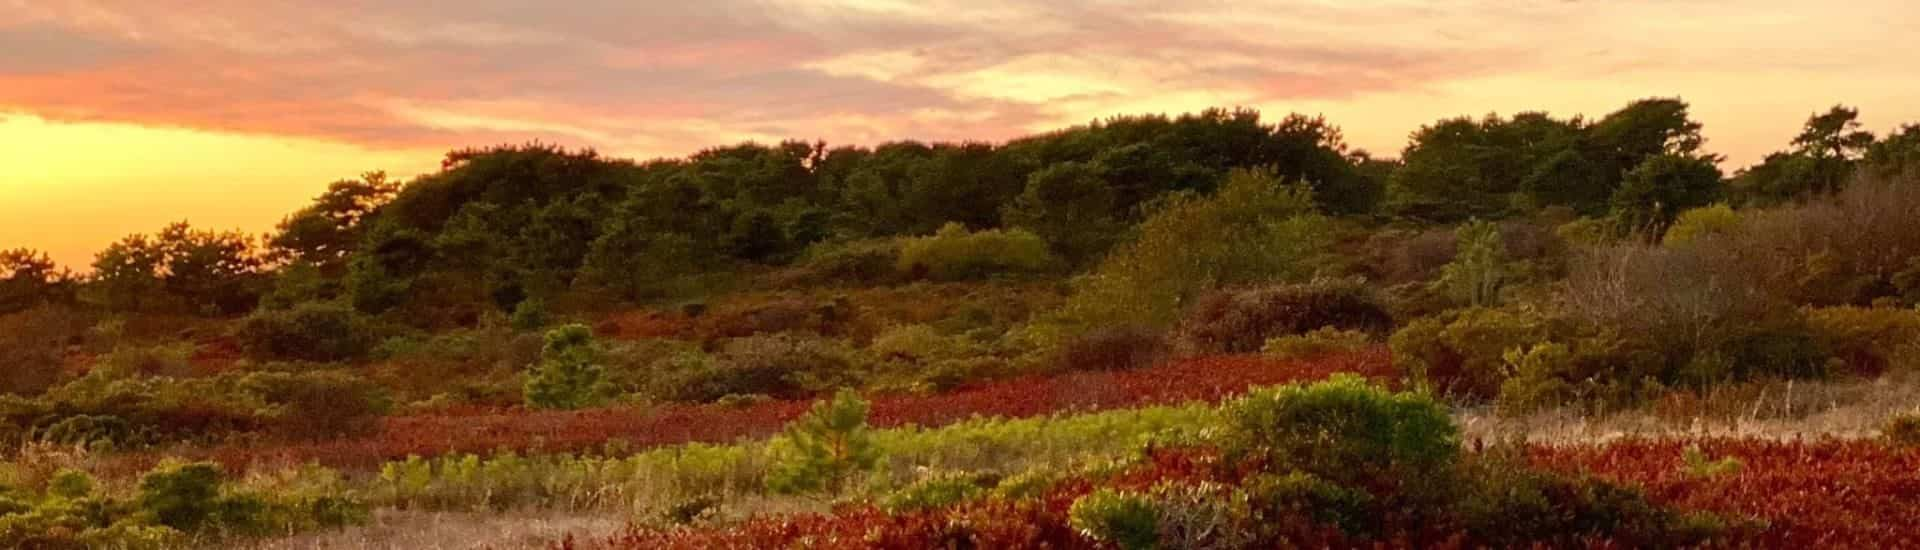 Small hill covered with red, brown, and green plants, shrubs, bushes and trees at dusk